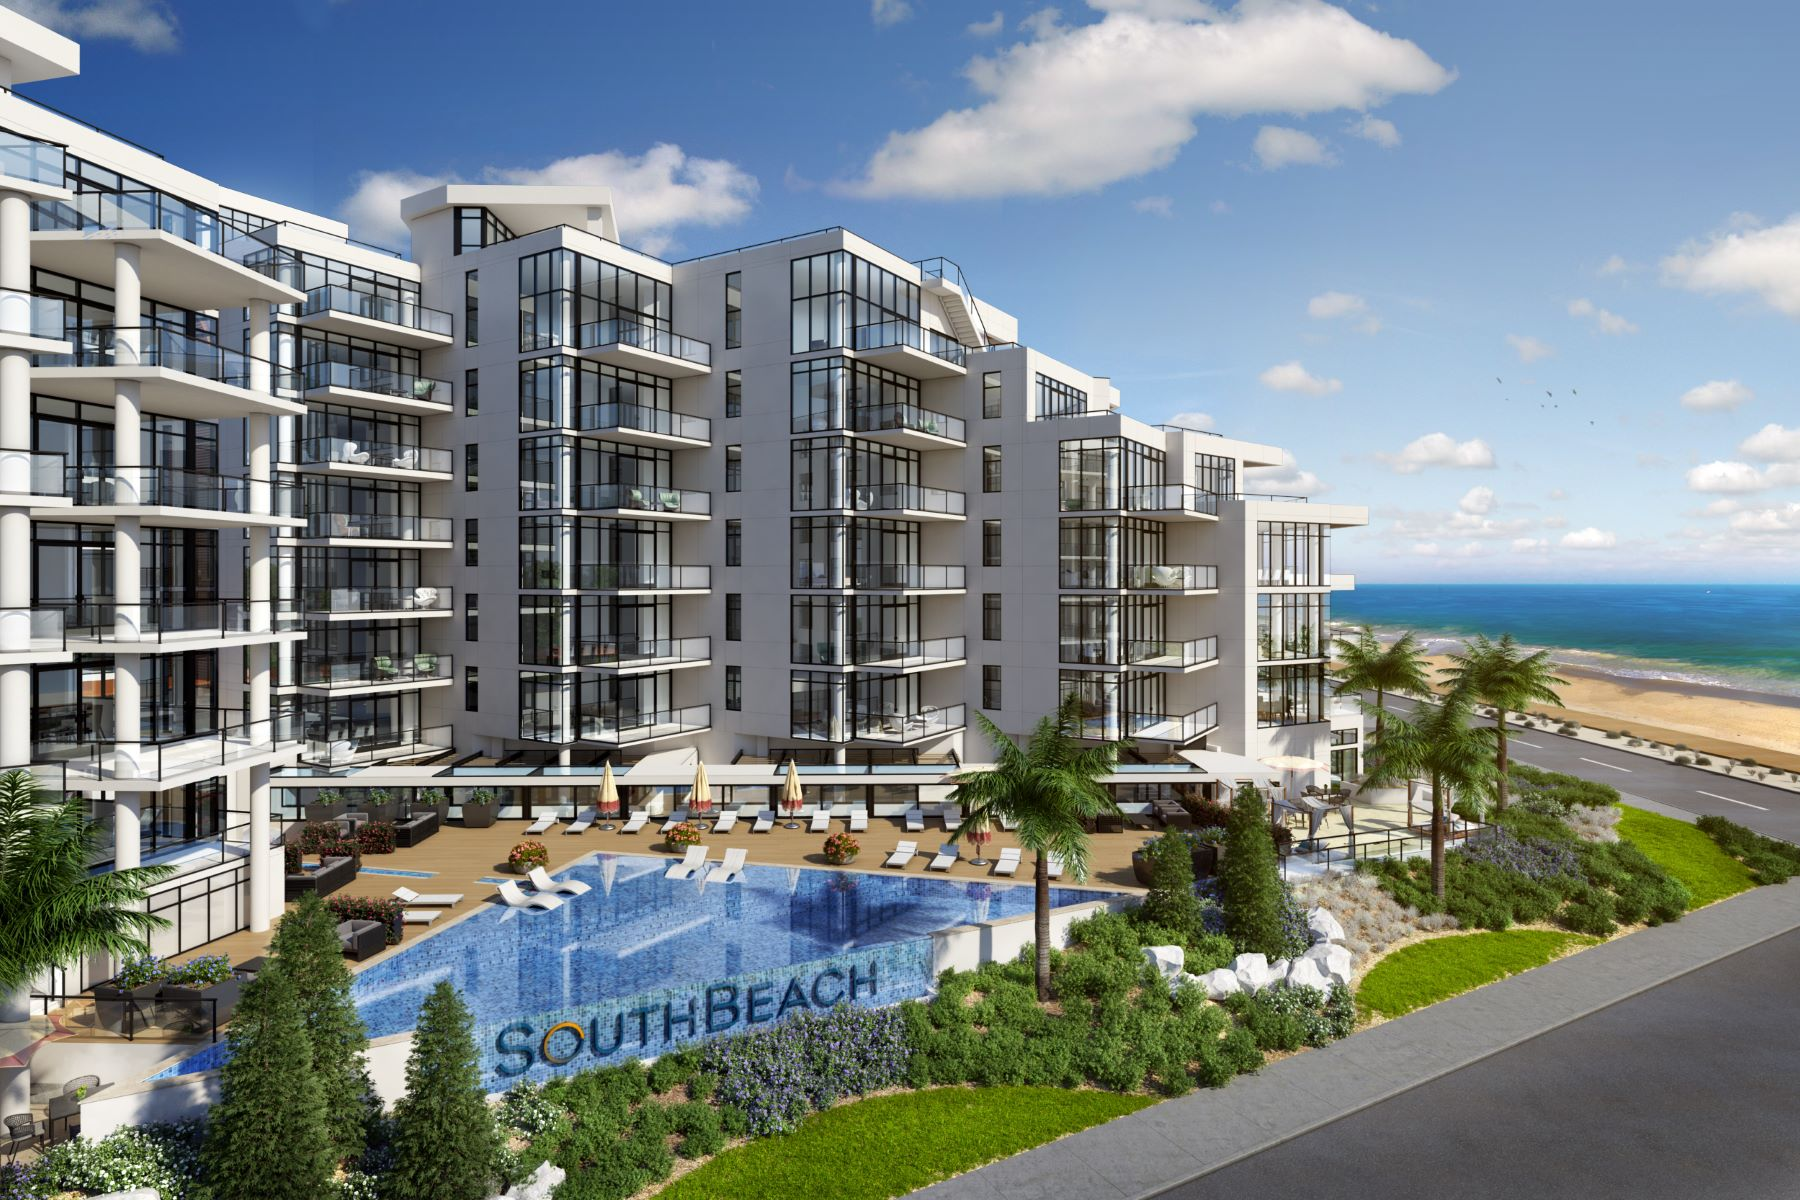 Condominiums for Sale at South Beach at Long Branch 350 Ocean Avenue 102/205 Long Branch, New Jersey 07740 United States